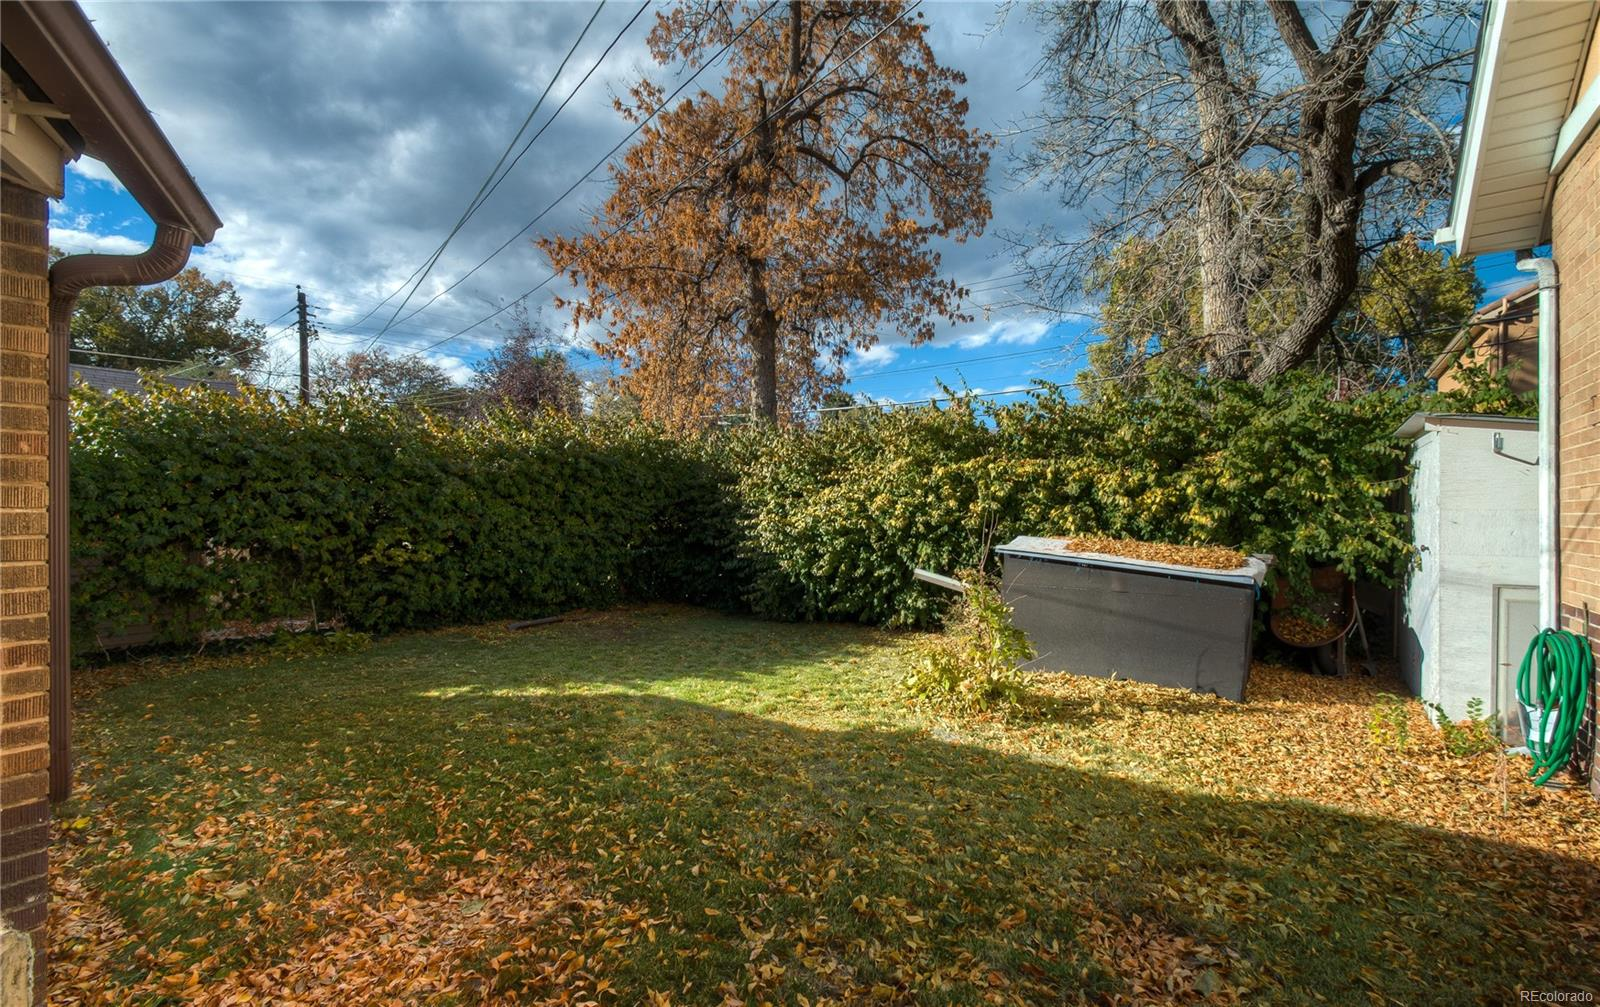 Backyard is perfect for outdoor activities on warm days!